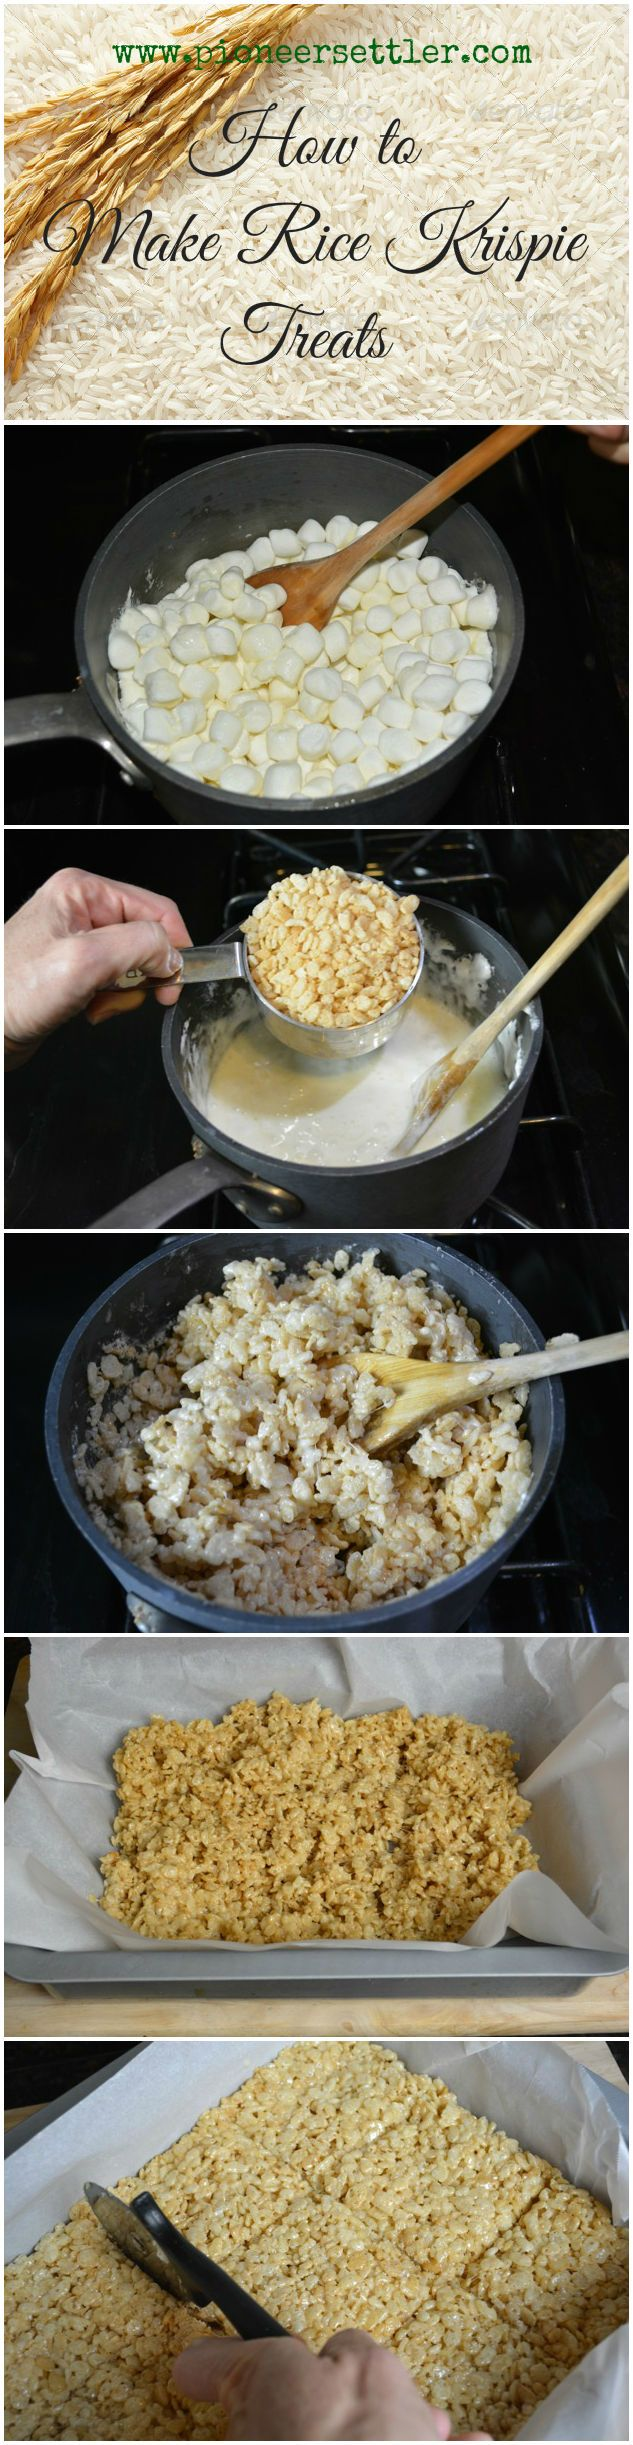 How to Make Rice Krispie Treats | A super yummy recipe that is so easy to make, so perfect for trick or treat or even Christmas gifts!  Step by step photo tutorial, recipe and instructions for my favorite breakfast food turned into a dessert.  Pioneer Settler | Best Homemade Recipes and Food | Homesteading & Self Reliance | #pioneersettler | pioneersettler.com